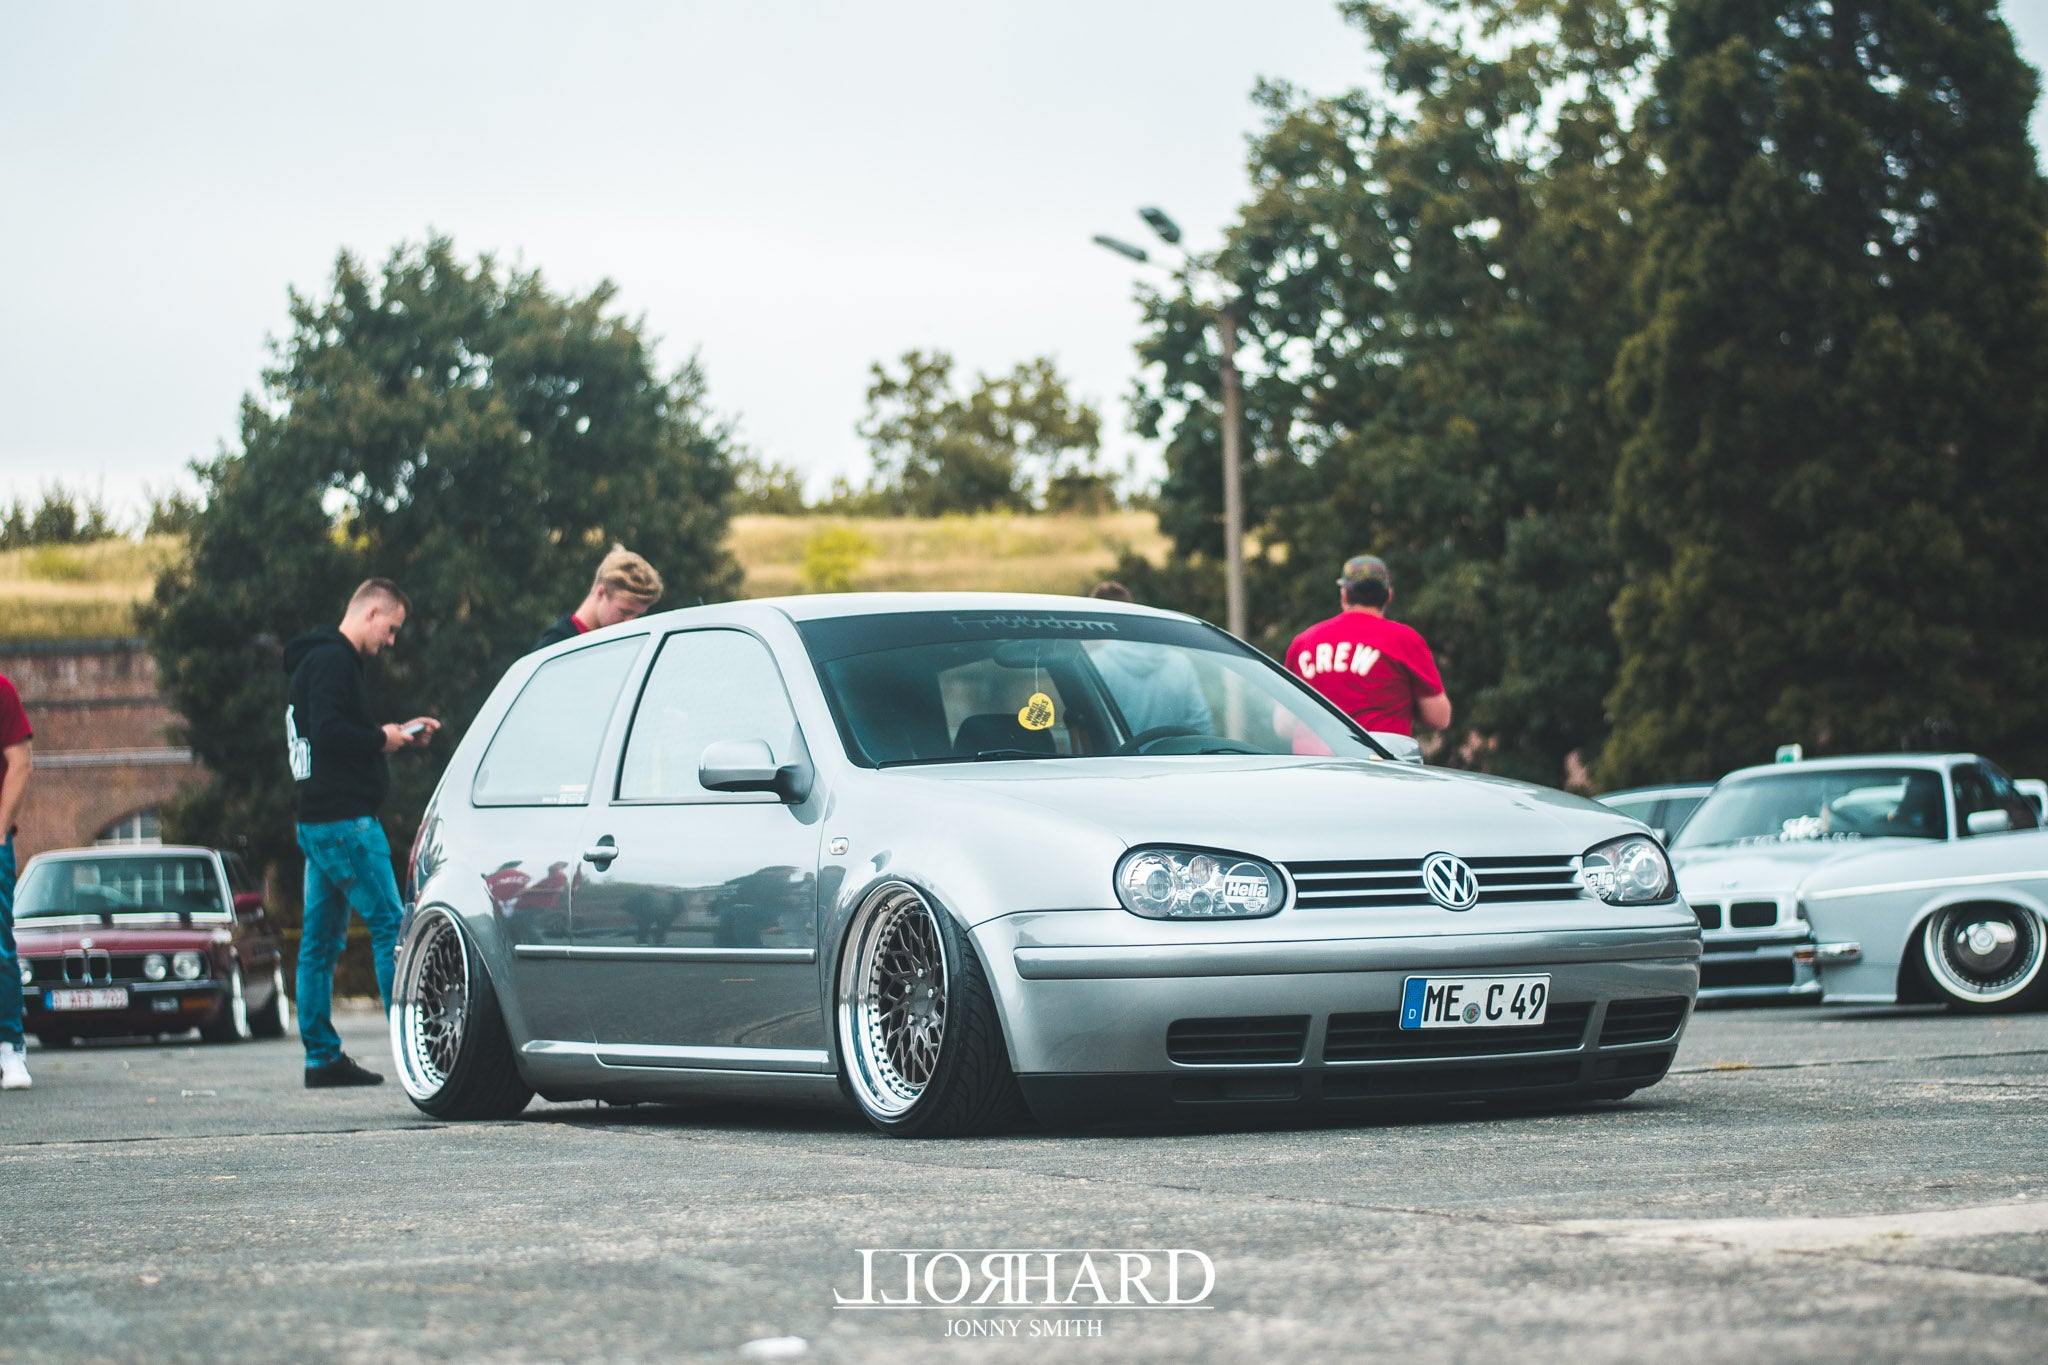 RollHard Belgian Chapter 2018 6.0 Citadel, Diest, Belgium. Modified Car culture, custom cars, belgian car scene, superb records, risenation, auto finesse, airlift, bbs, rotiform, audi, volkswagen, porsche, bmw, opel, nissan, honda, JDM meet, european cars